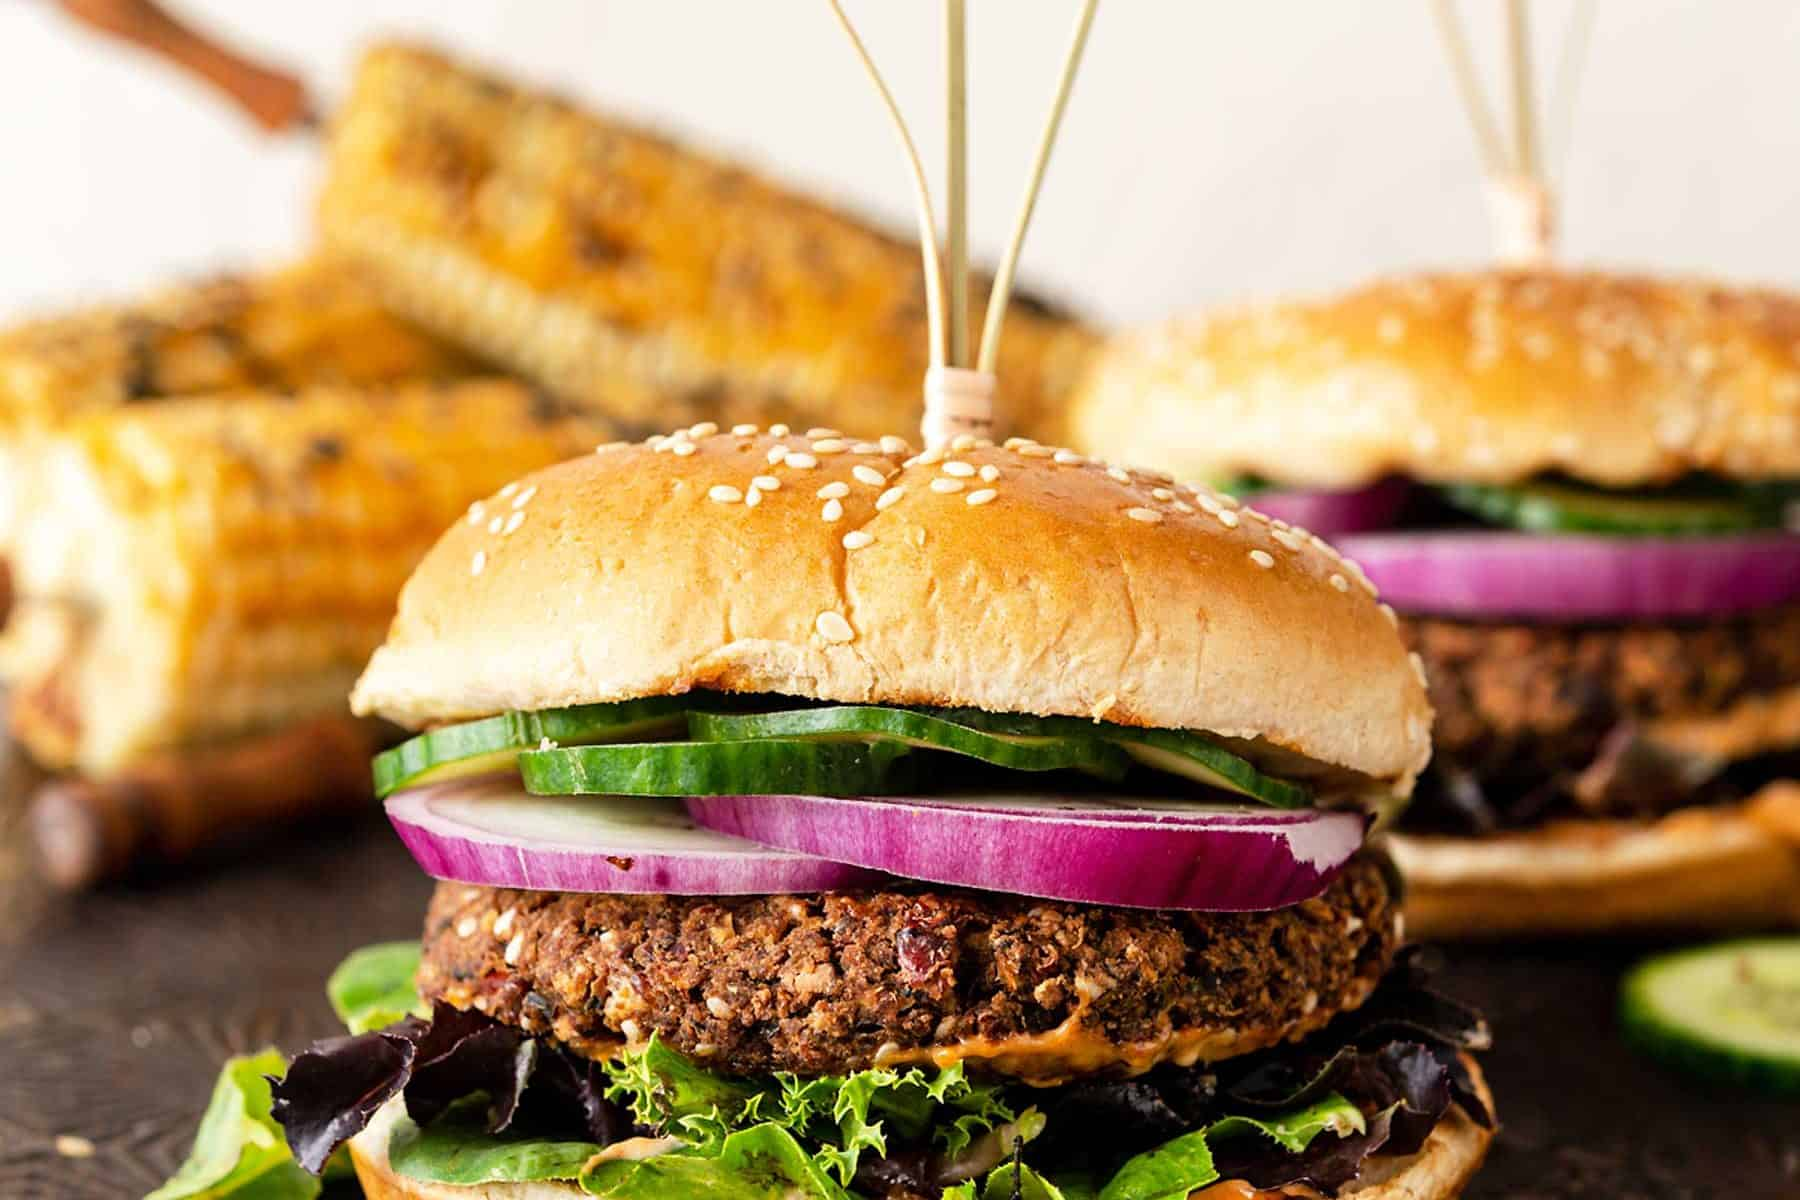 Veggie burger stacked with onion, cucumbers, mixed greens and bun